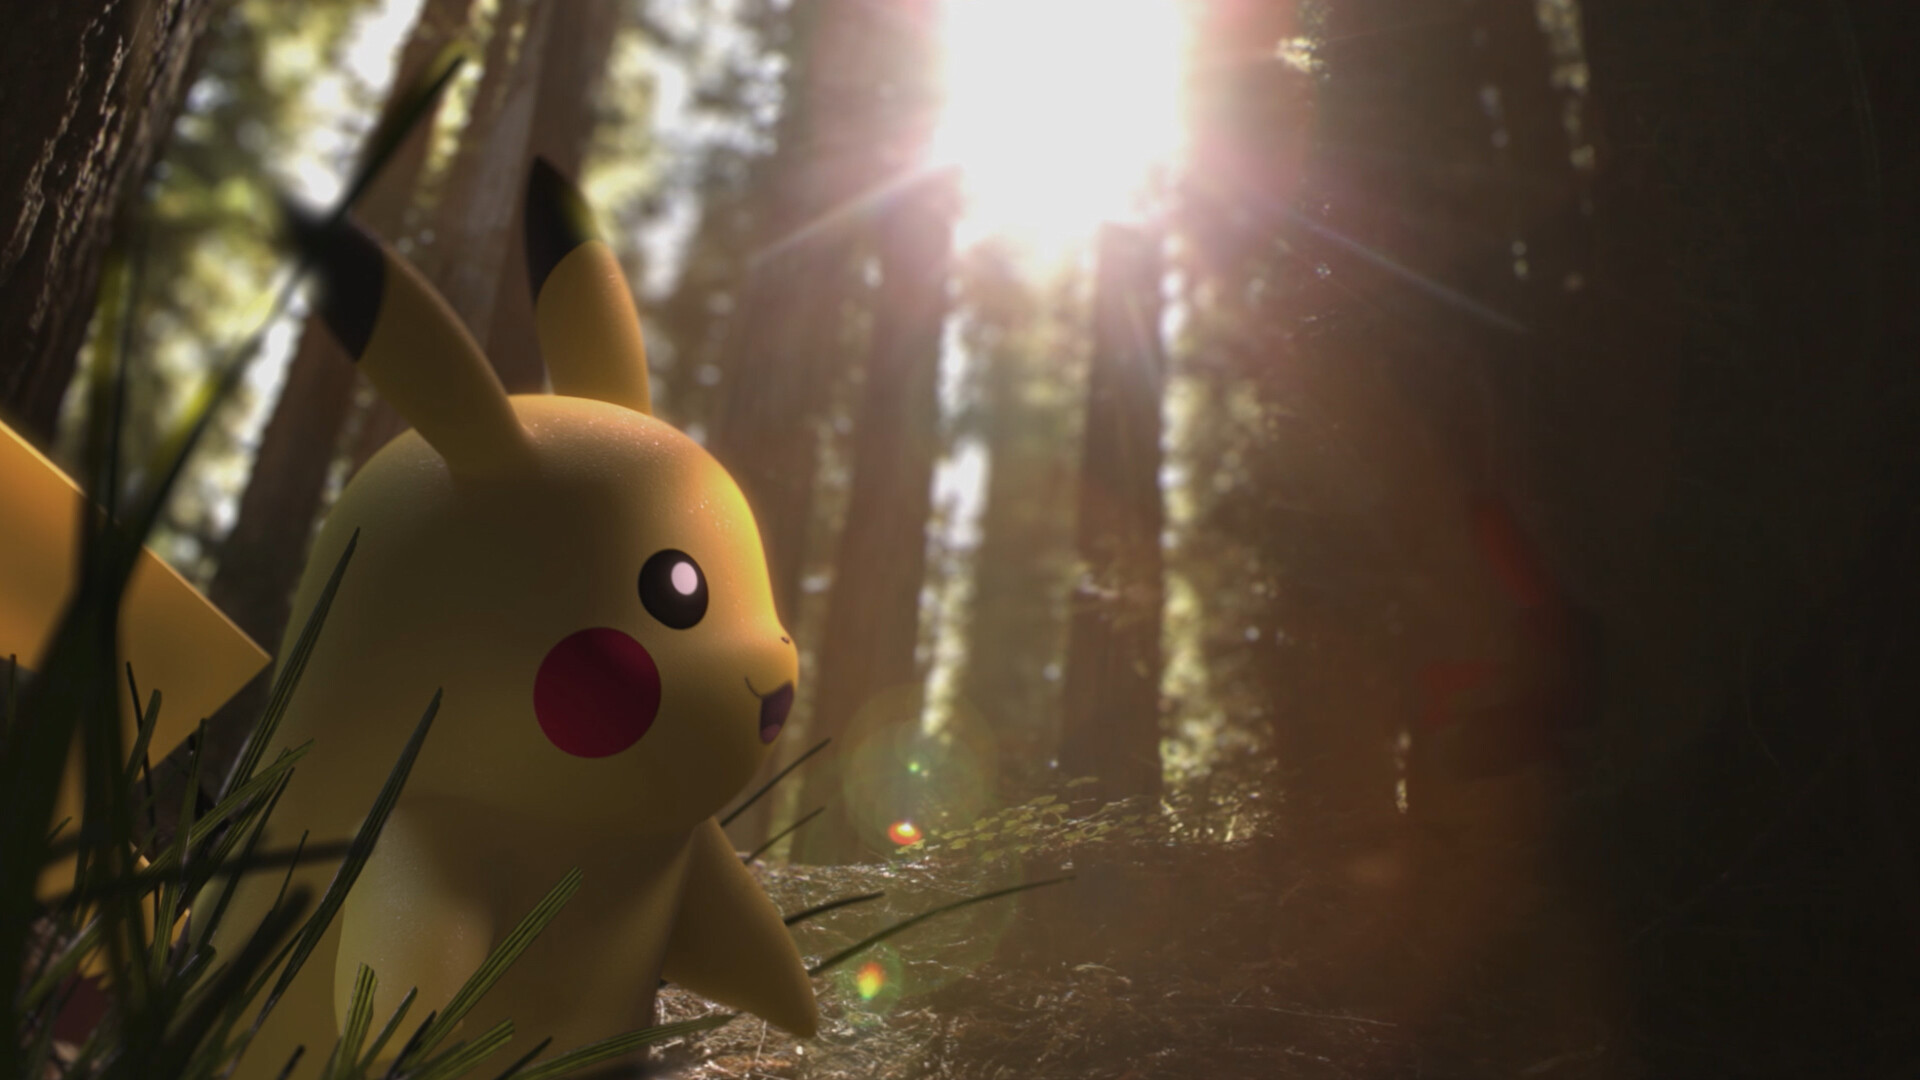 pikachu-in-forest-ka.jpg